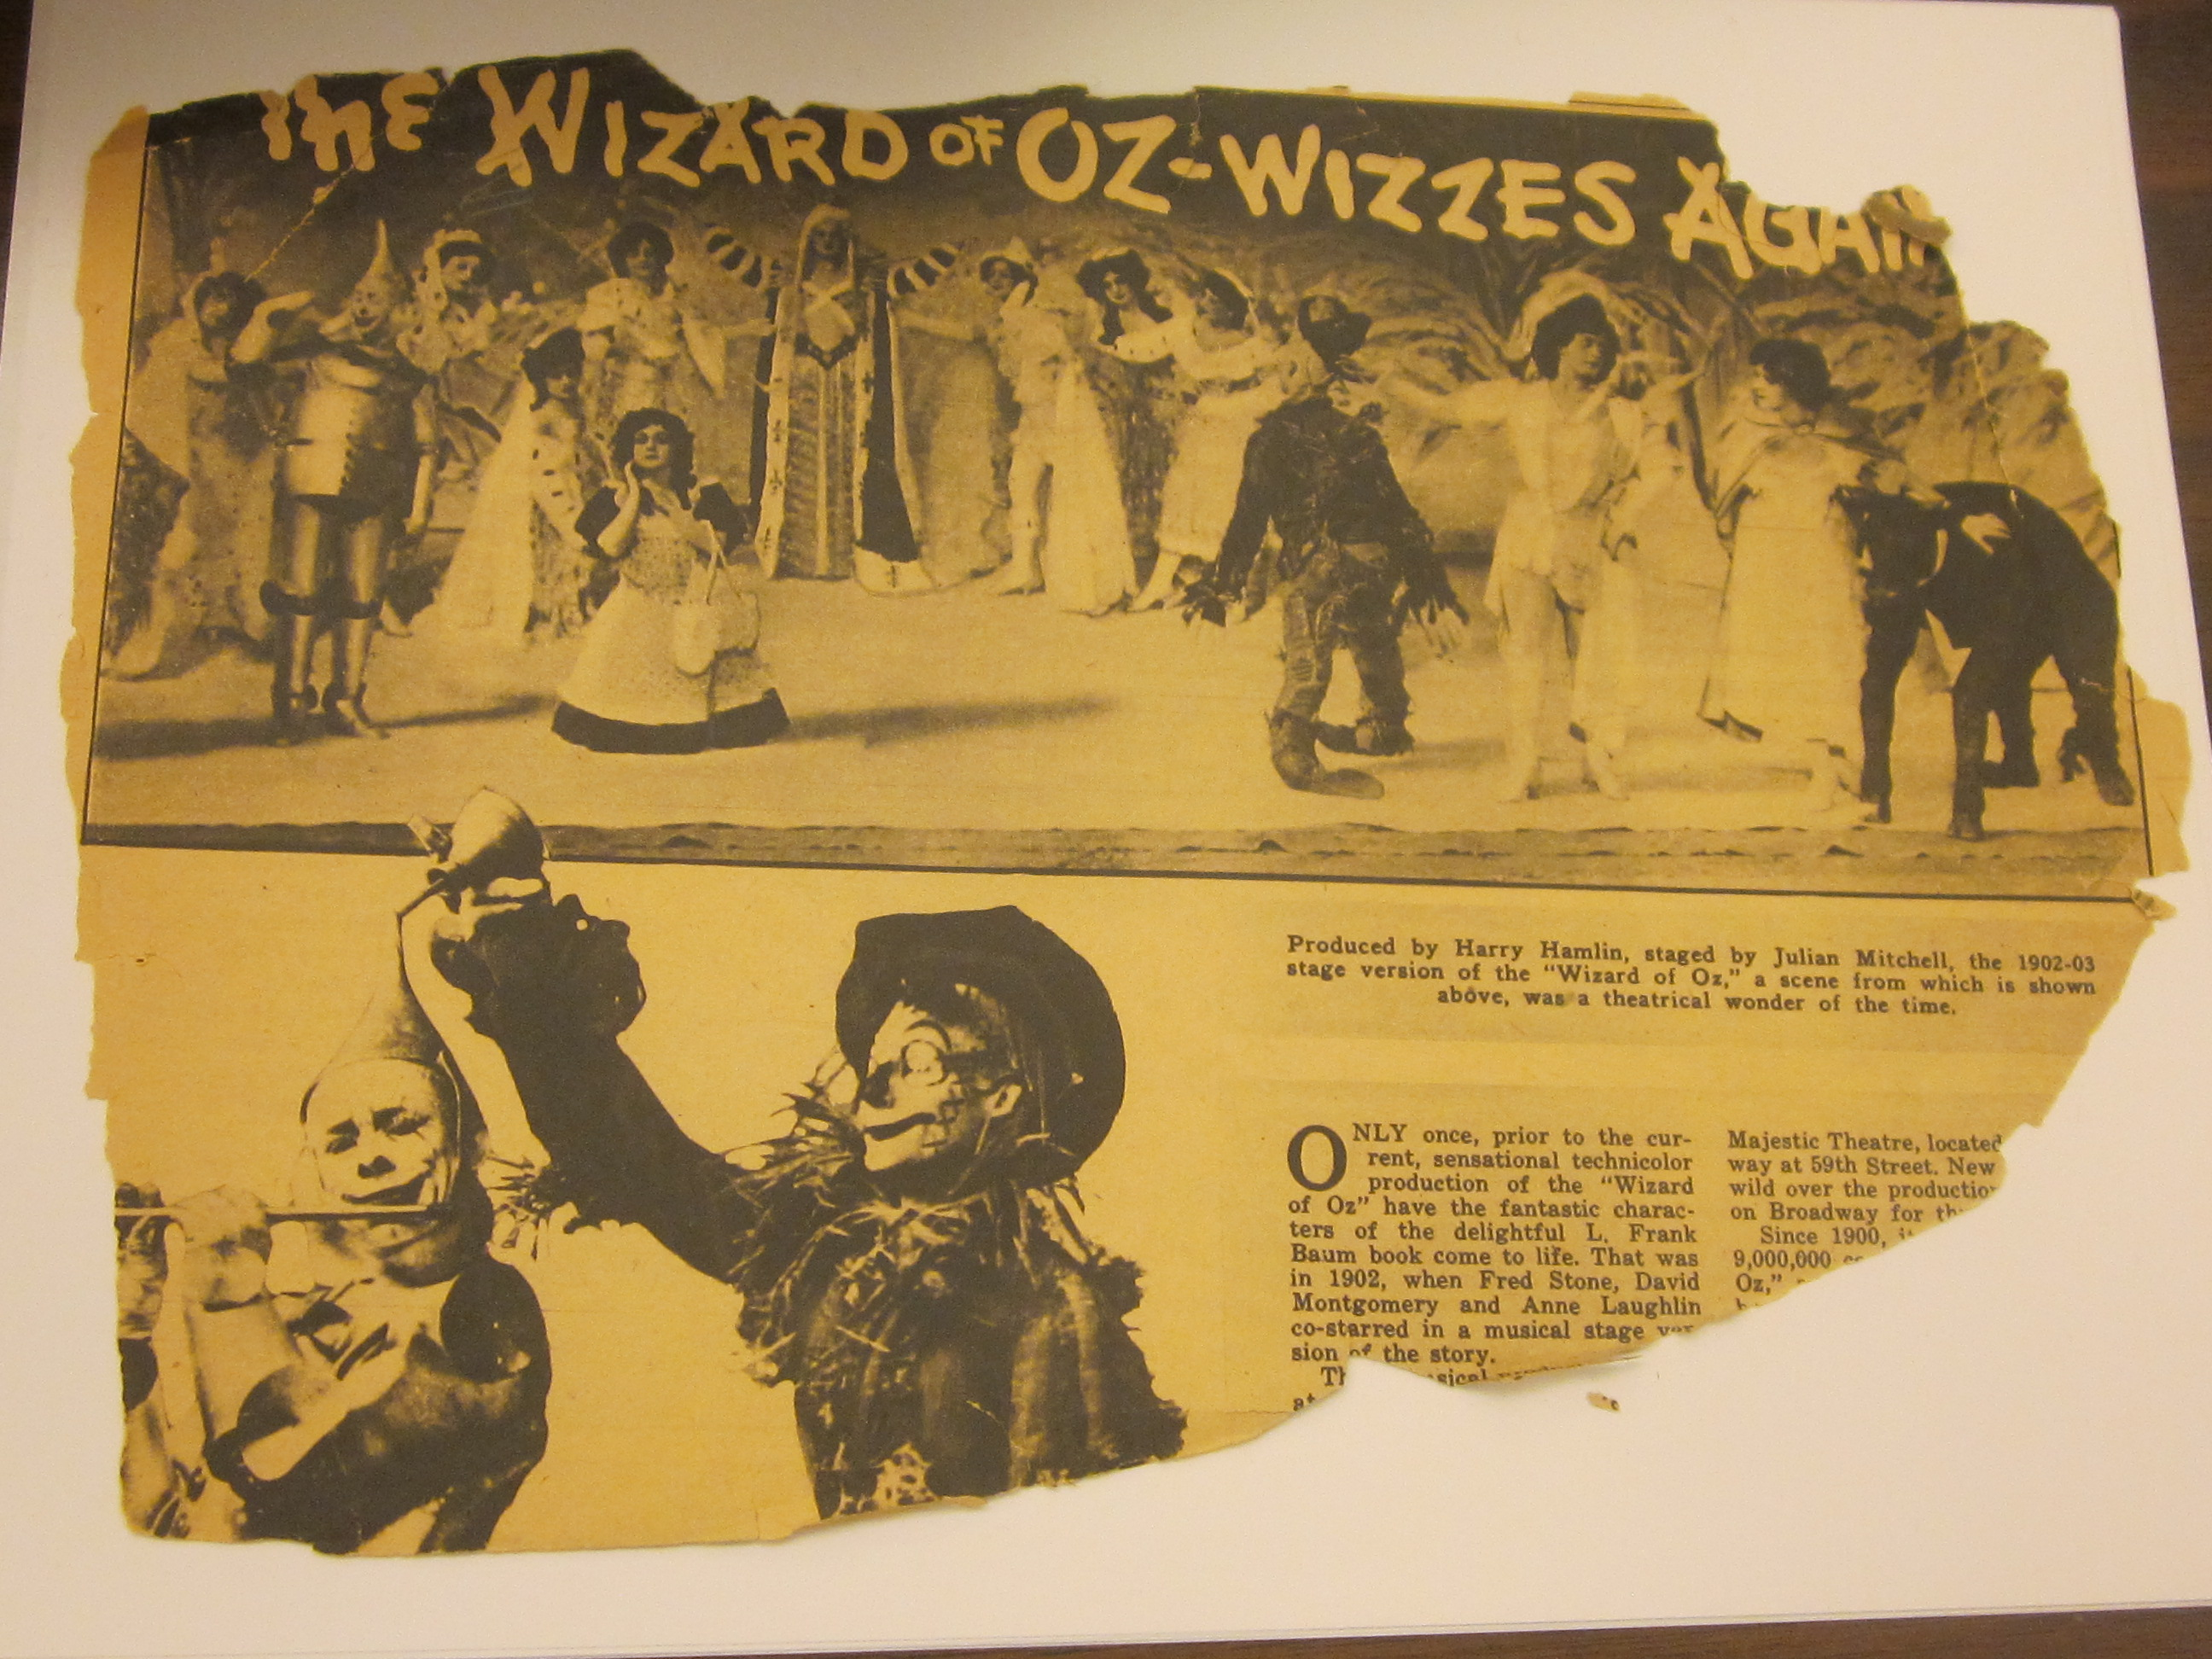 The Wizard of Oz (1902 musical)